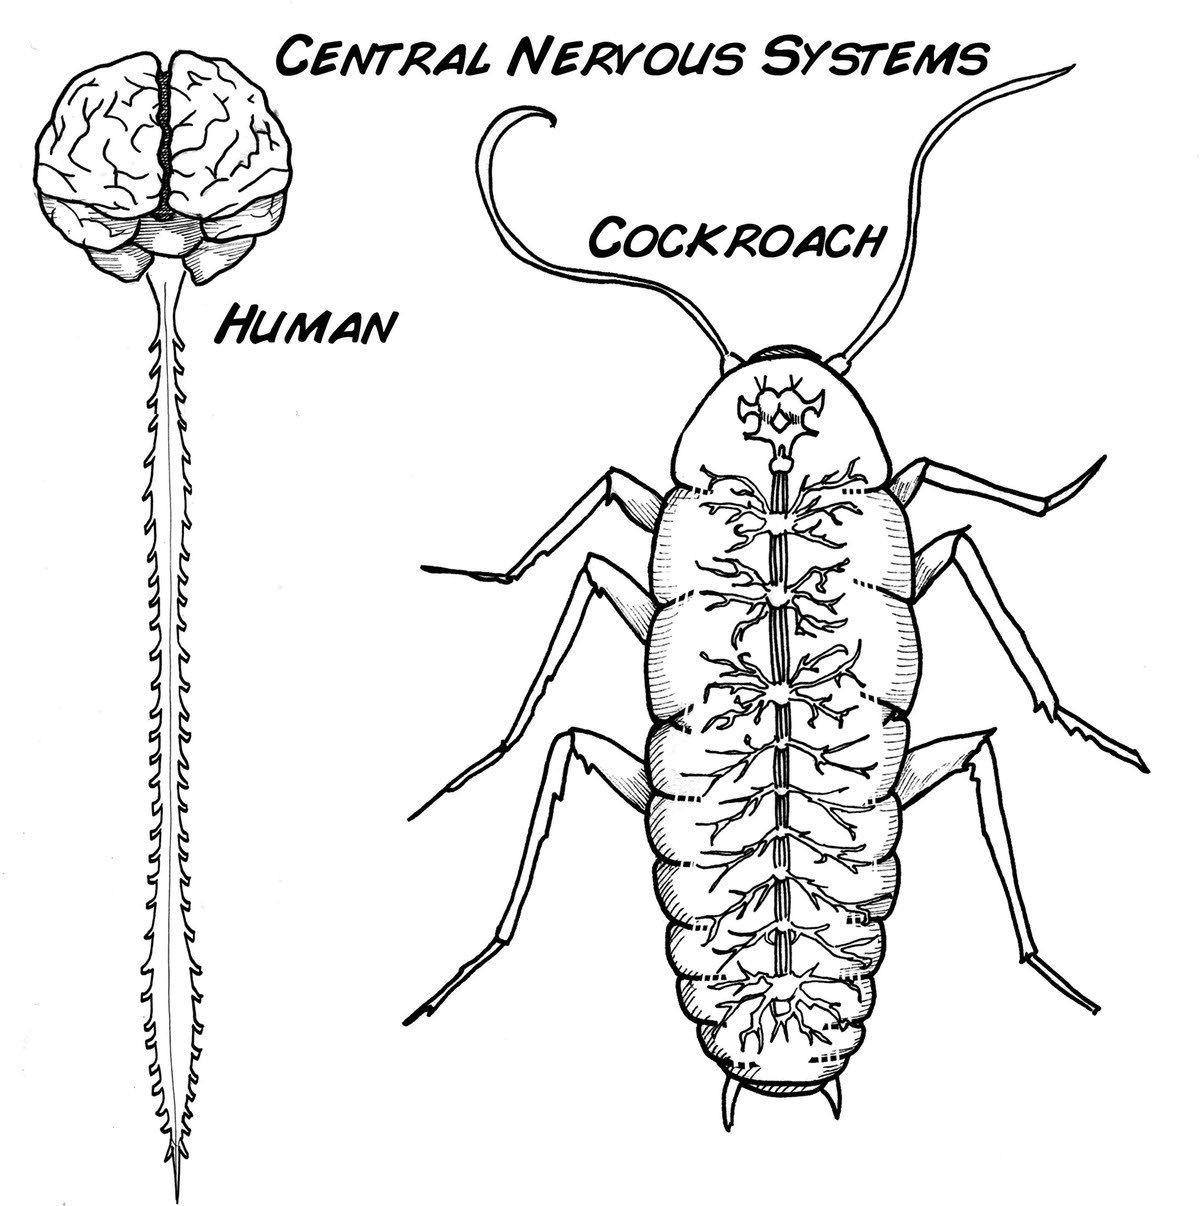 Nervous System Coloring Page At Getcolorings